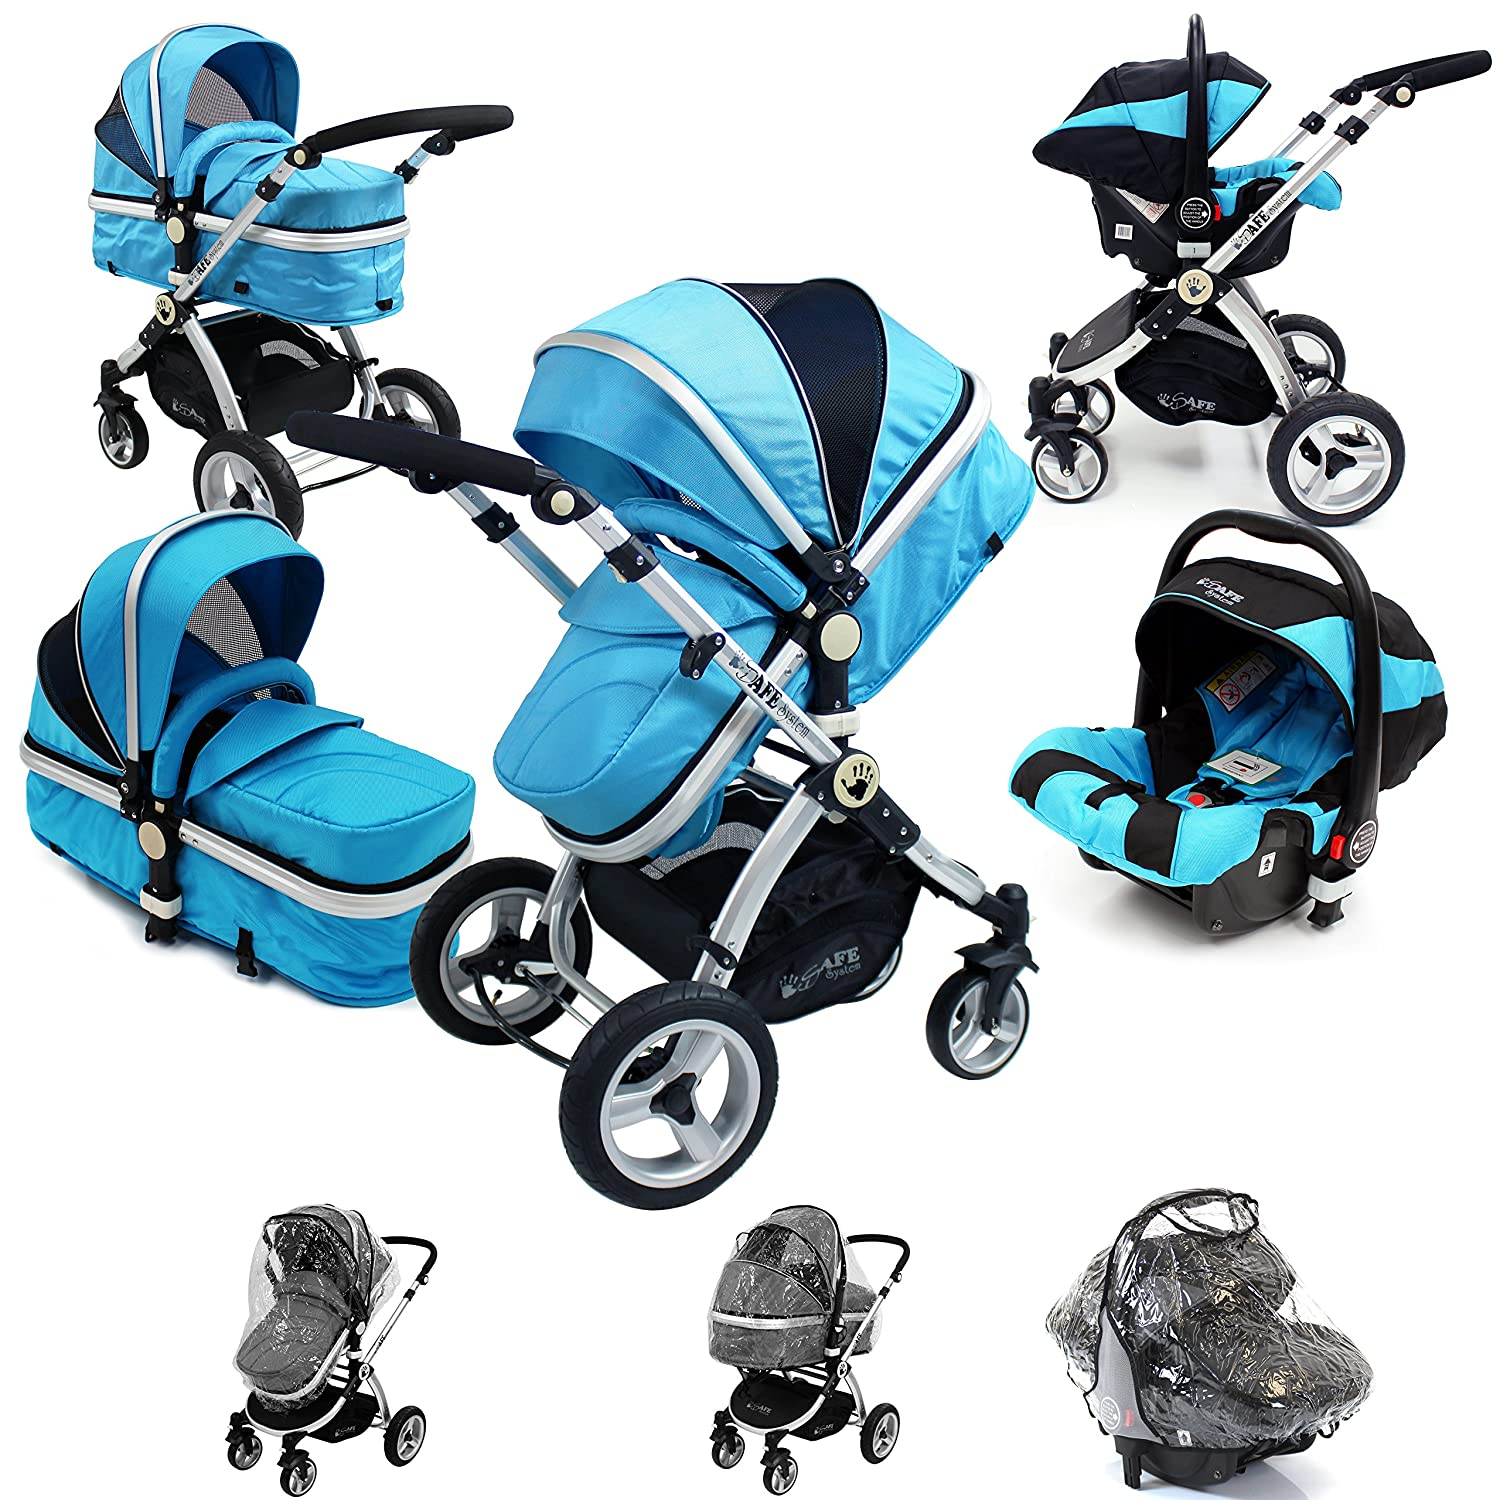 Ocean Trio Travel System Pram & Luxury Stroller 3 in 1